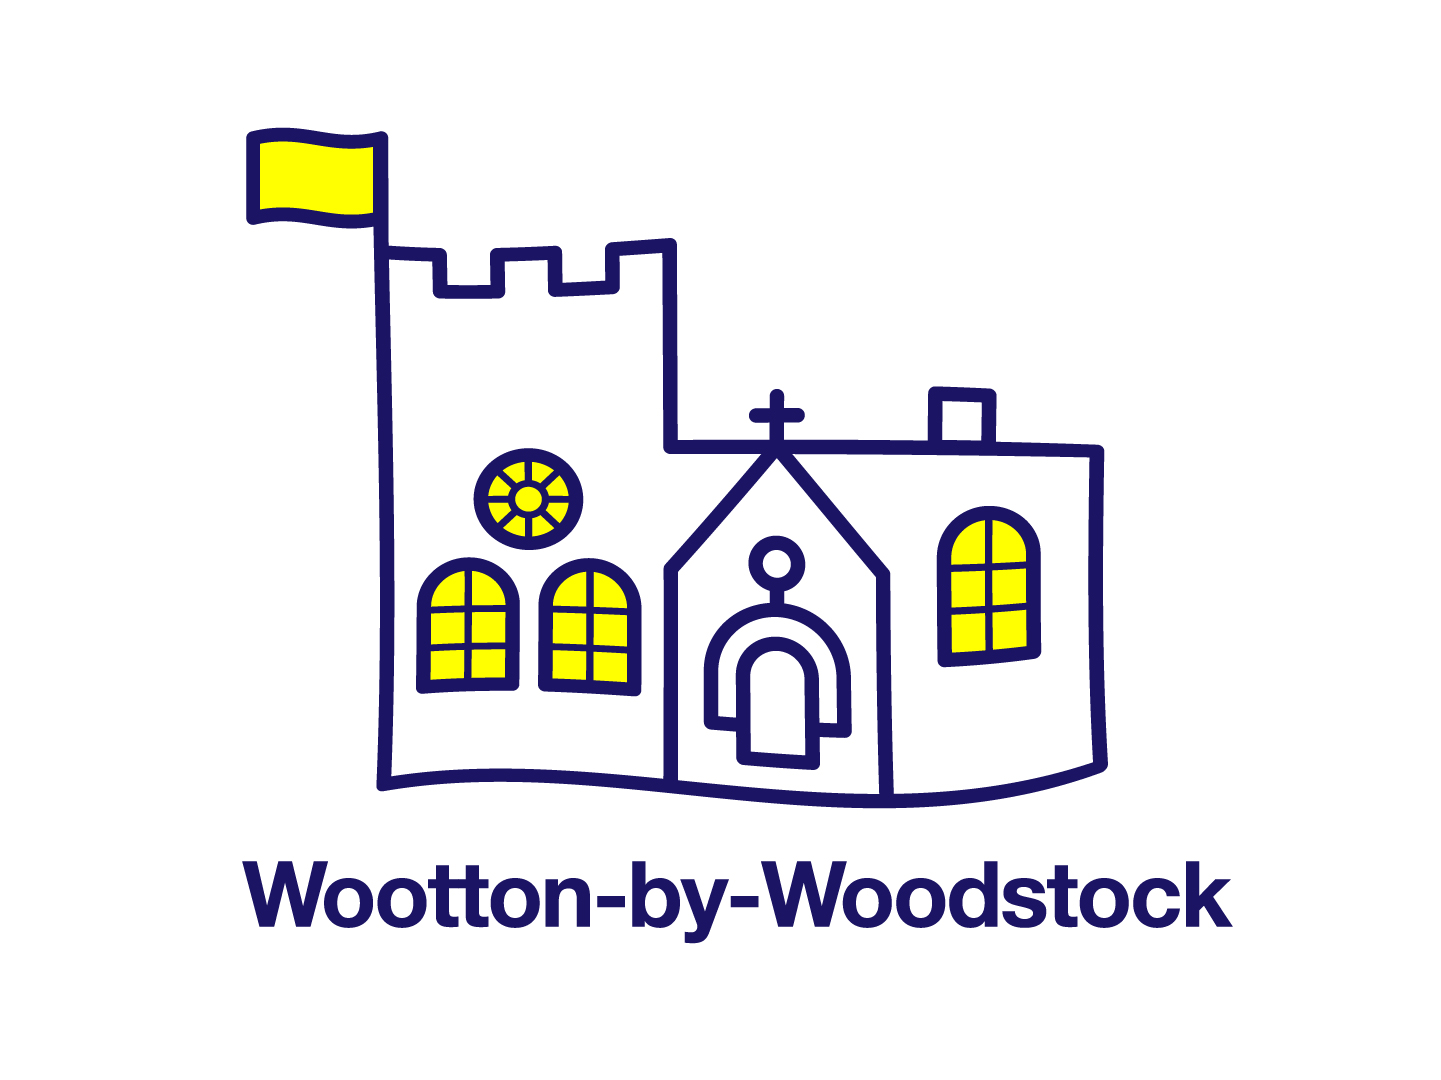 Wootton by Woodstock logo